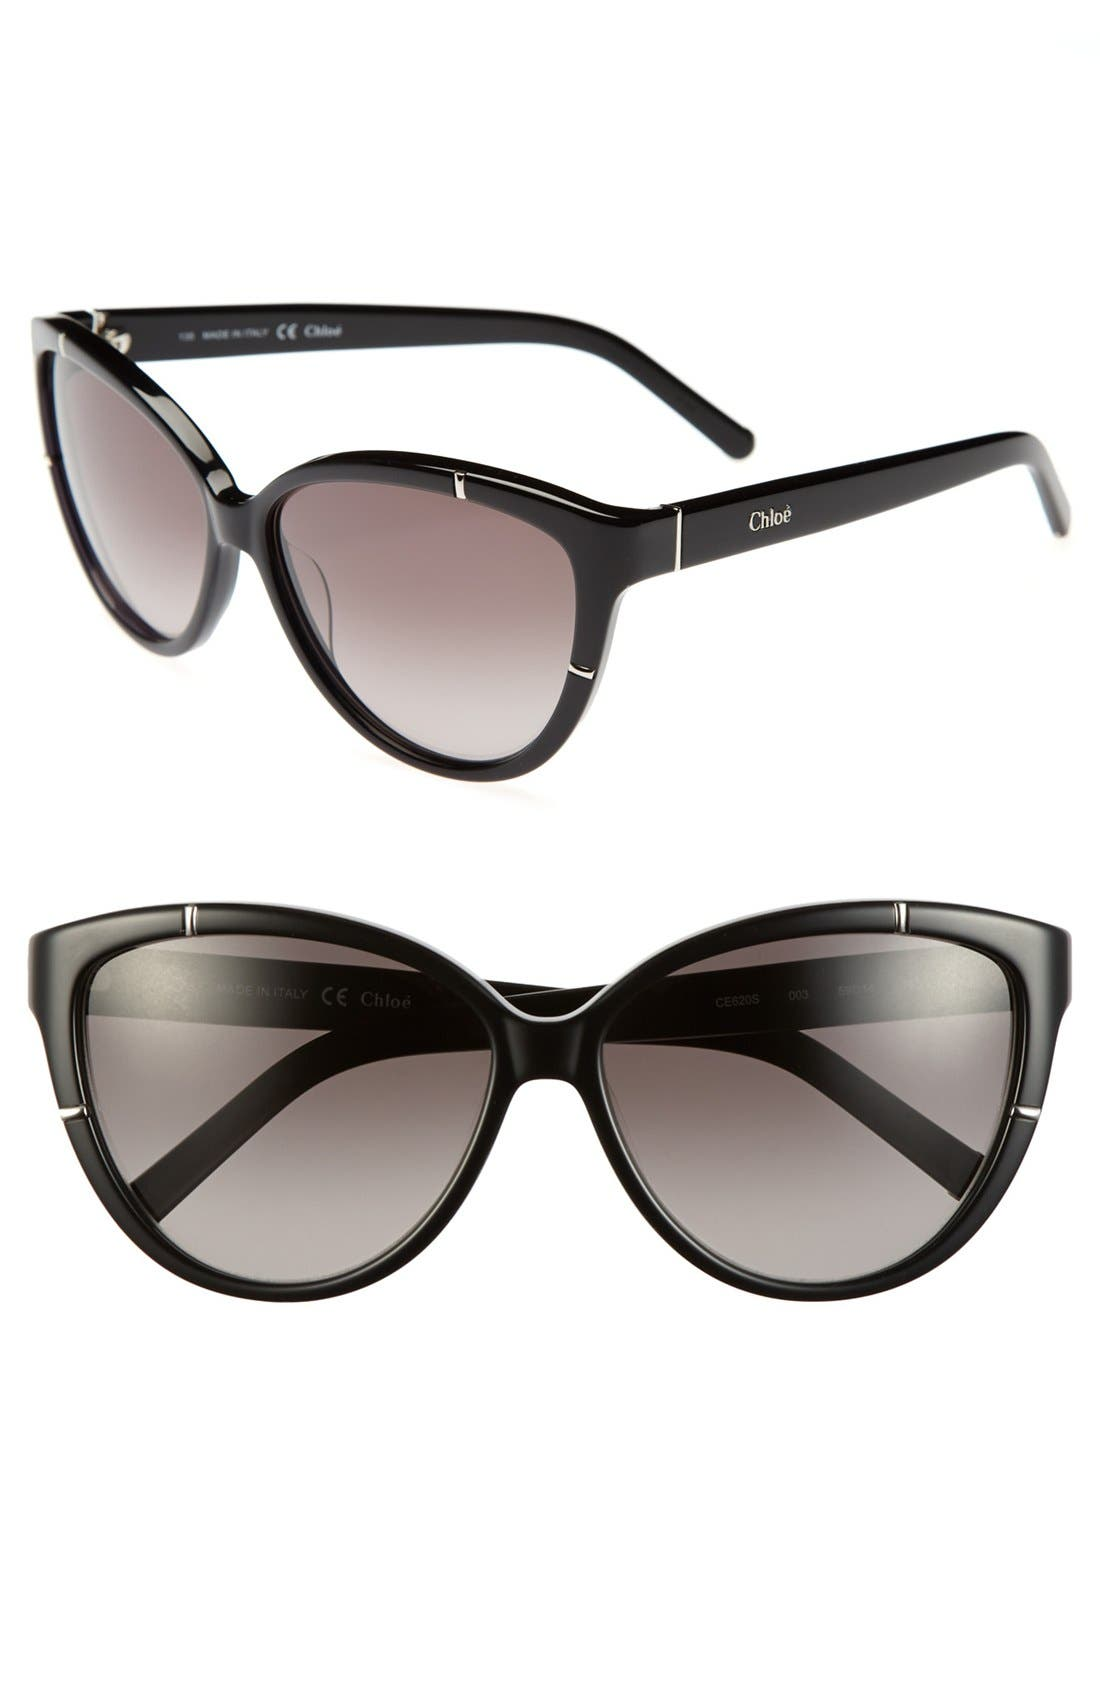 Alternate Image 1 Selected - Chloé 'Caspia' 59mm Sunglasses